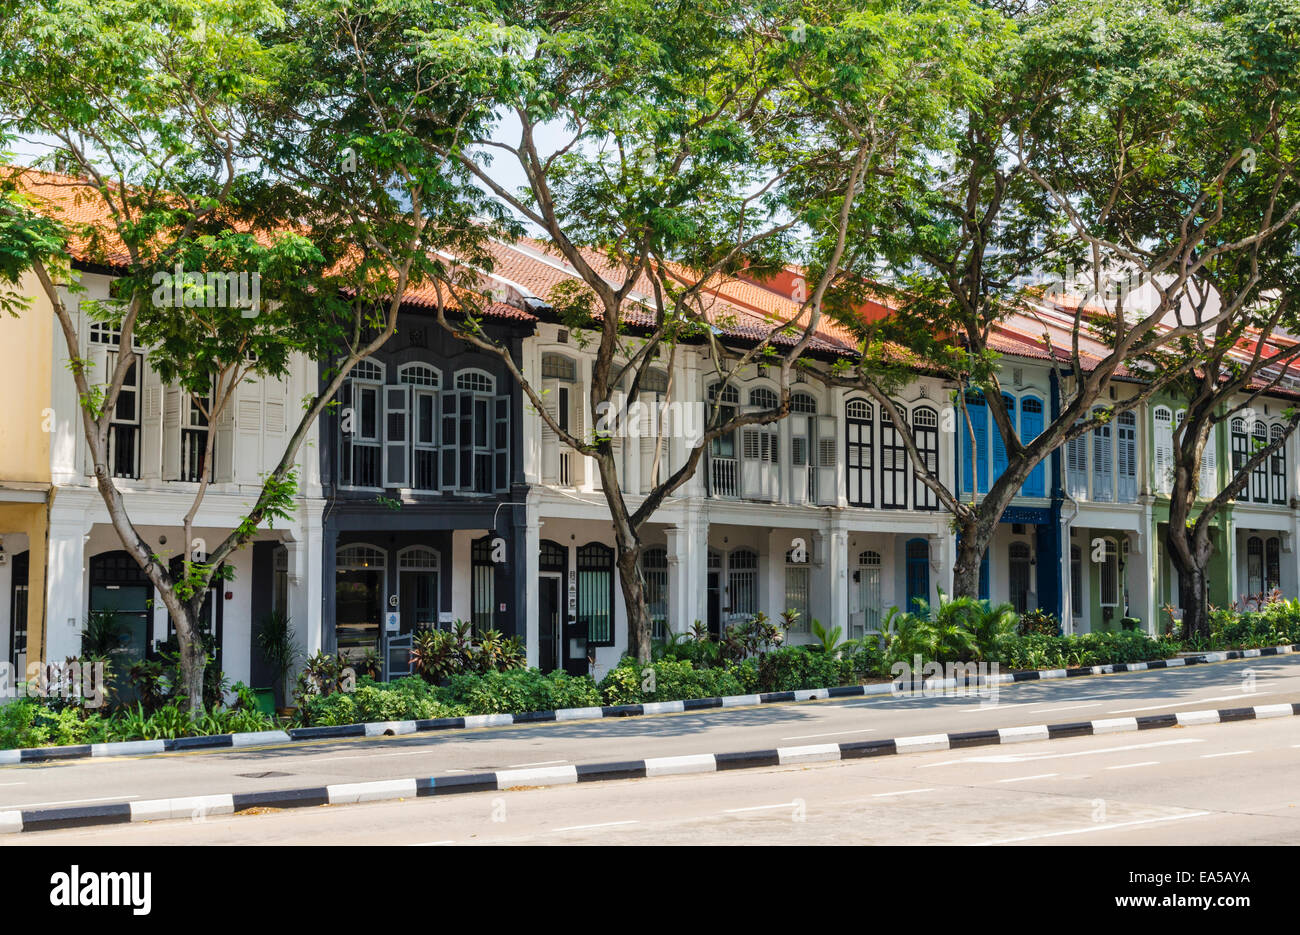 Terraced colourful shophouses along Neil Rd in Singapore - Stock Image